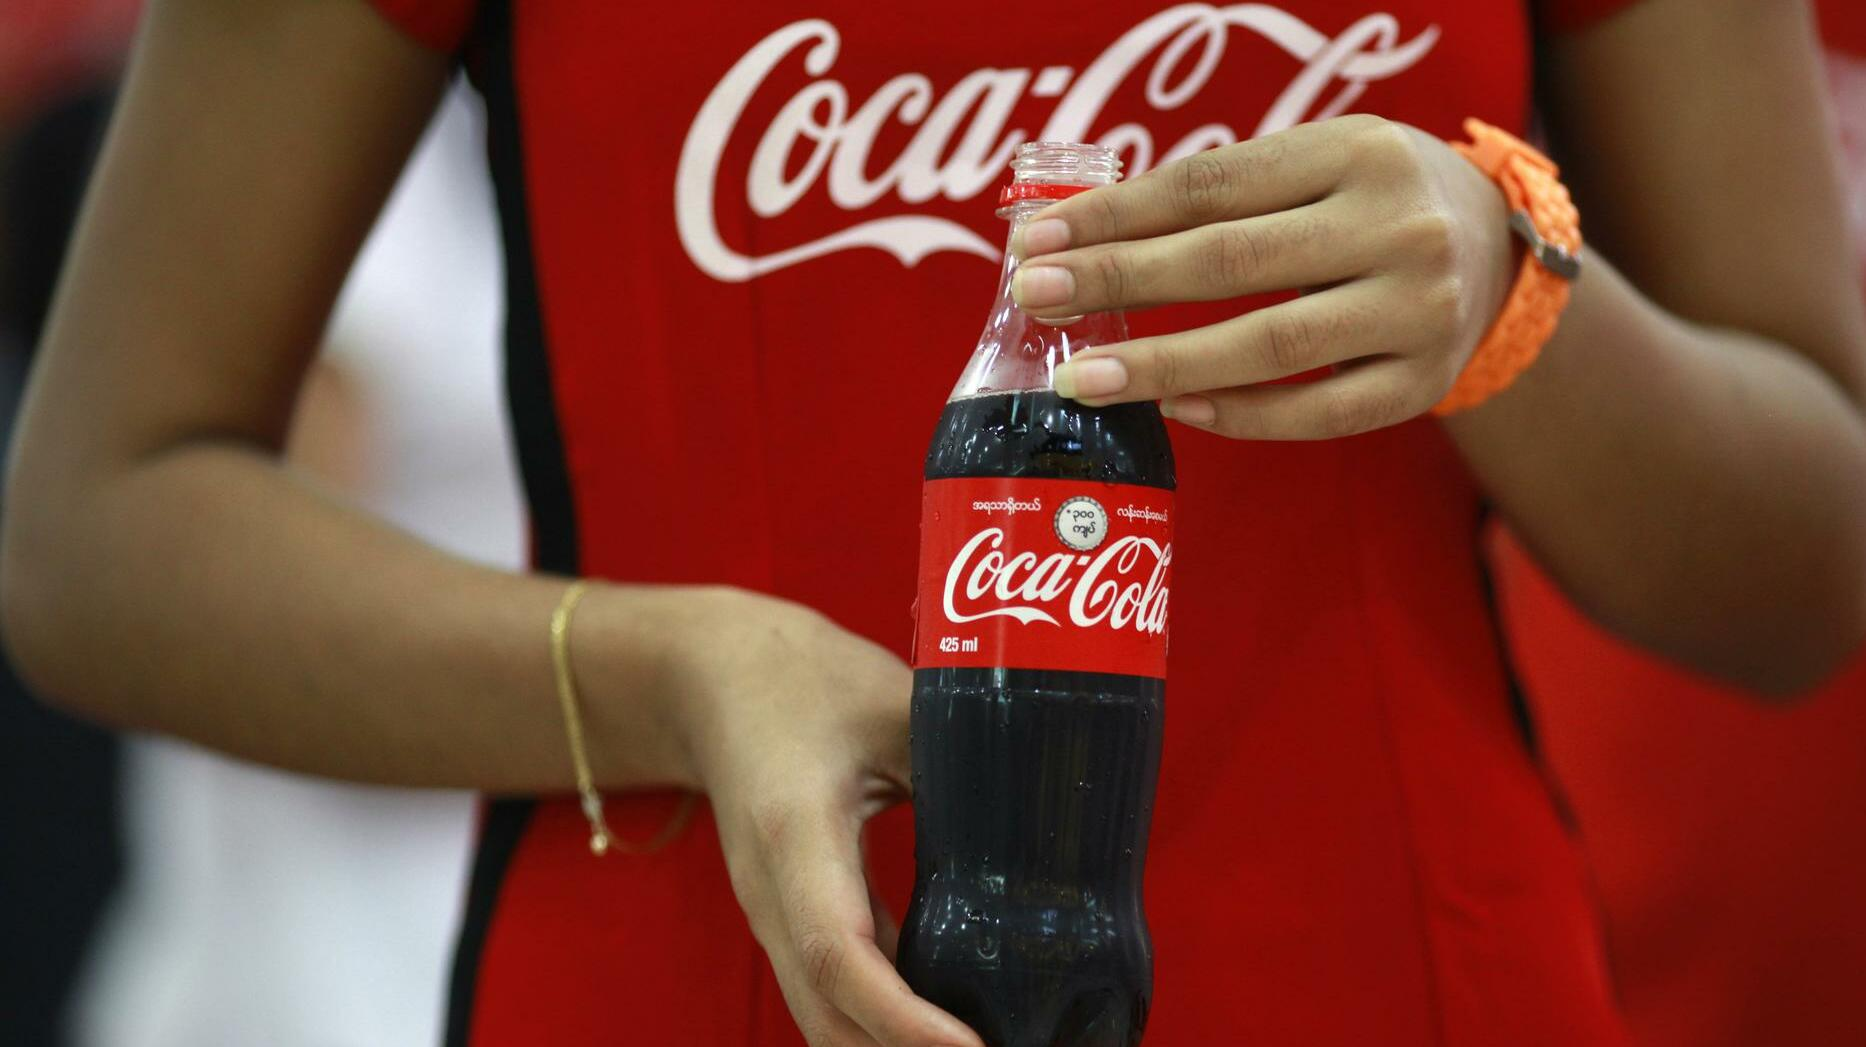 Coca-Cola Quelle: REUTERS